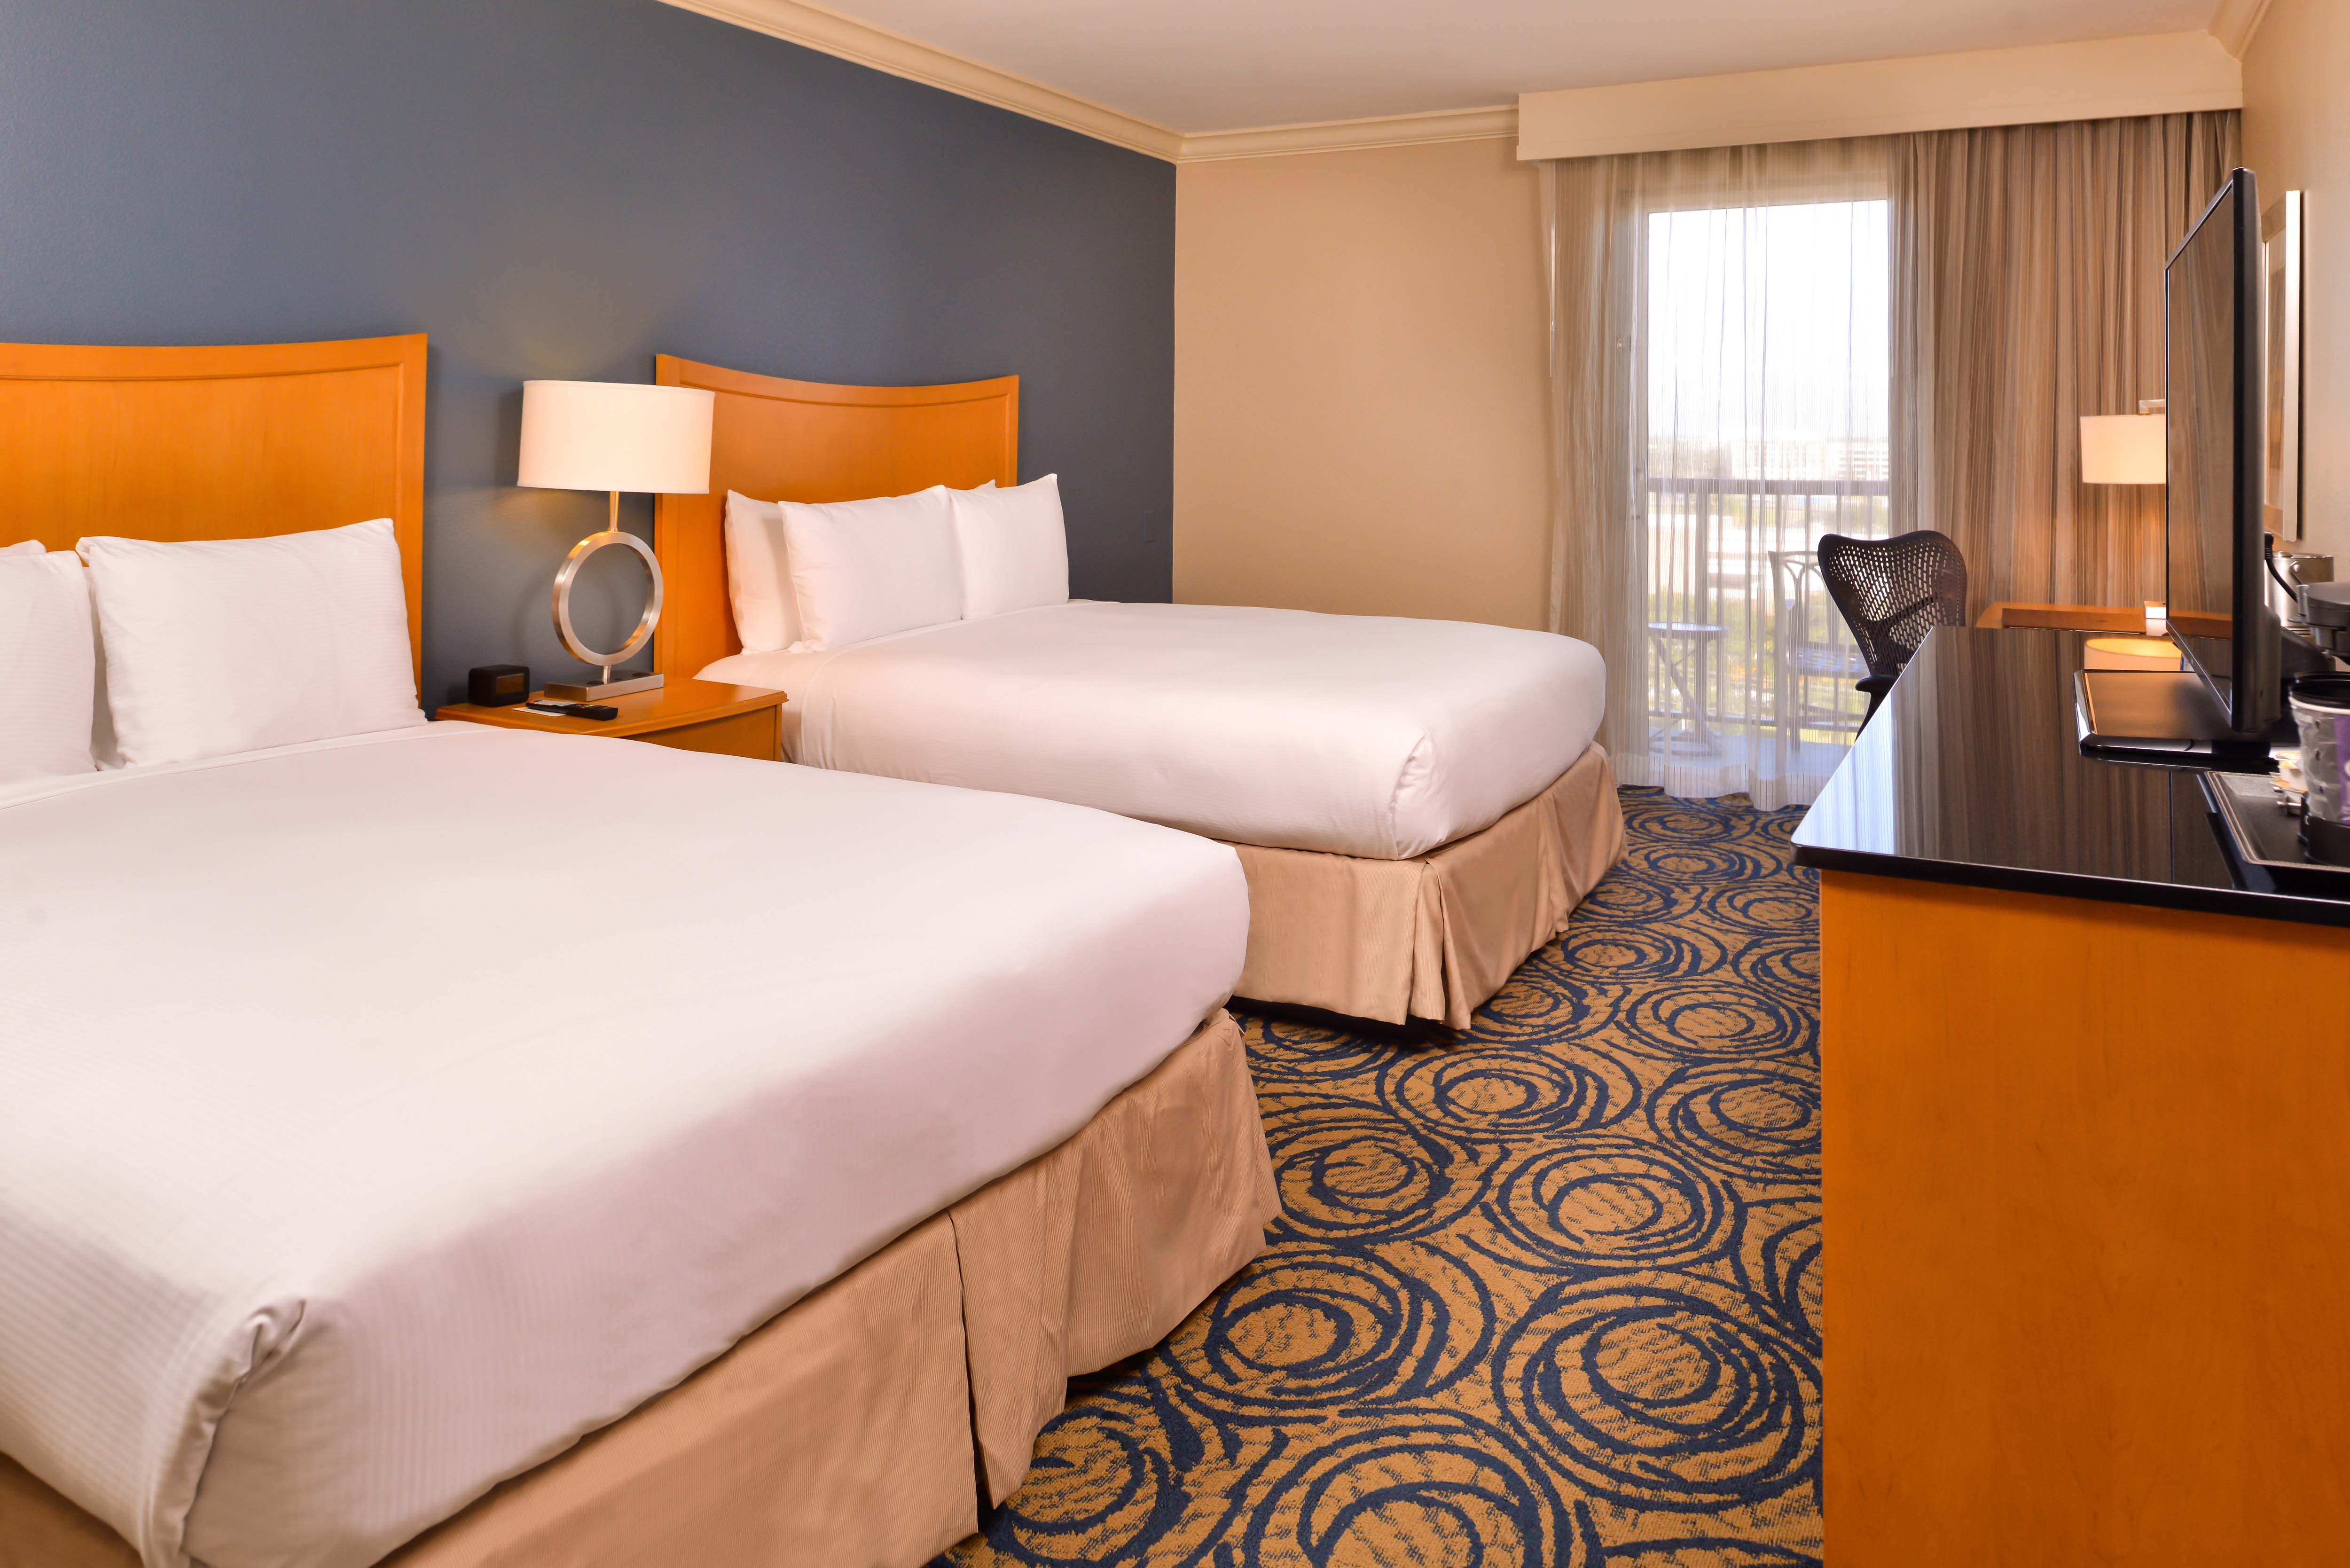 Breakfast & Wi-Fi at DoubleTree by Hilton Tampa Airport-Westshore